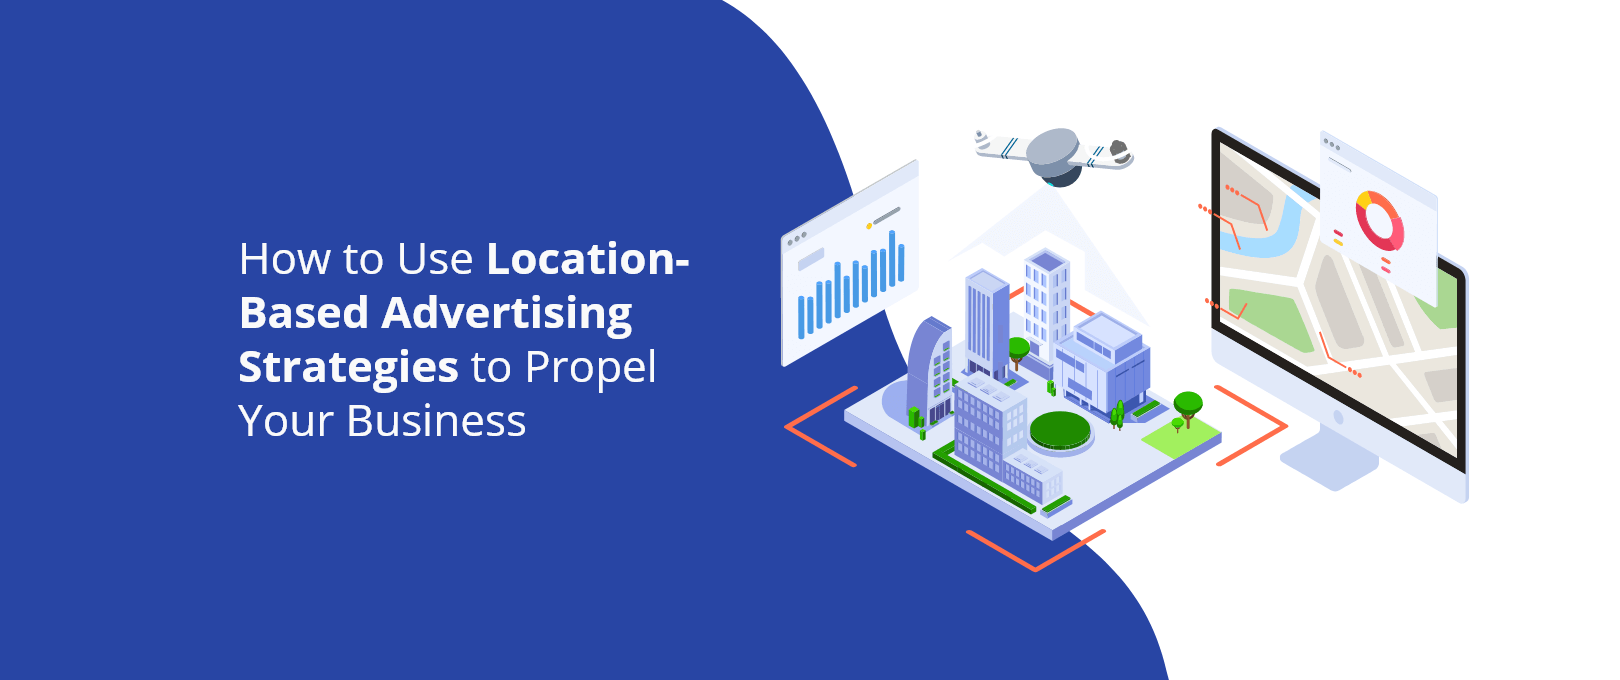 Location Based Marketing Strategies For Your Business Devrix Marketing Strategy Advertising Strategies Business Strategy